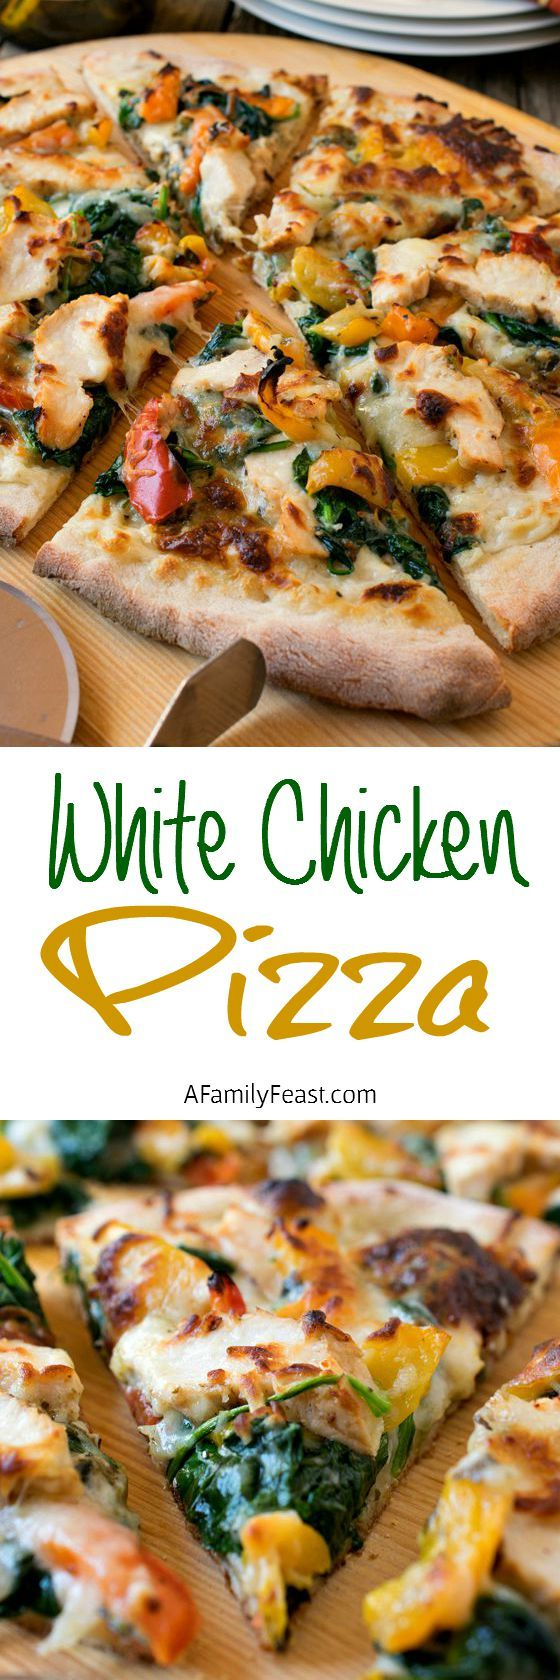 Change family pizza night with this delicious White Chicken Pizza! Grilled chicken, creamy white bechamel, pesto, peppers, spinach and mozzarella! Pizza heaven!